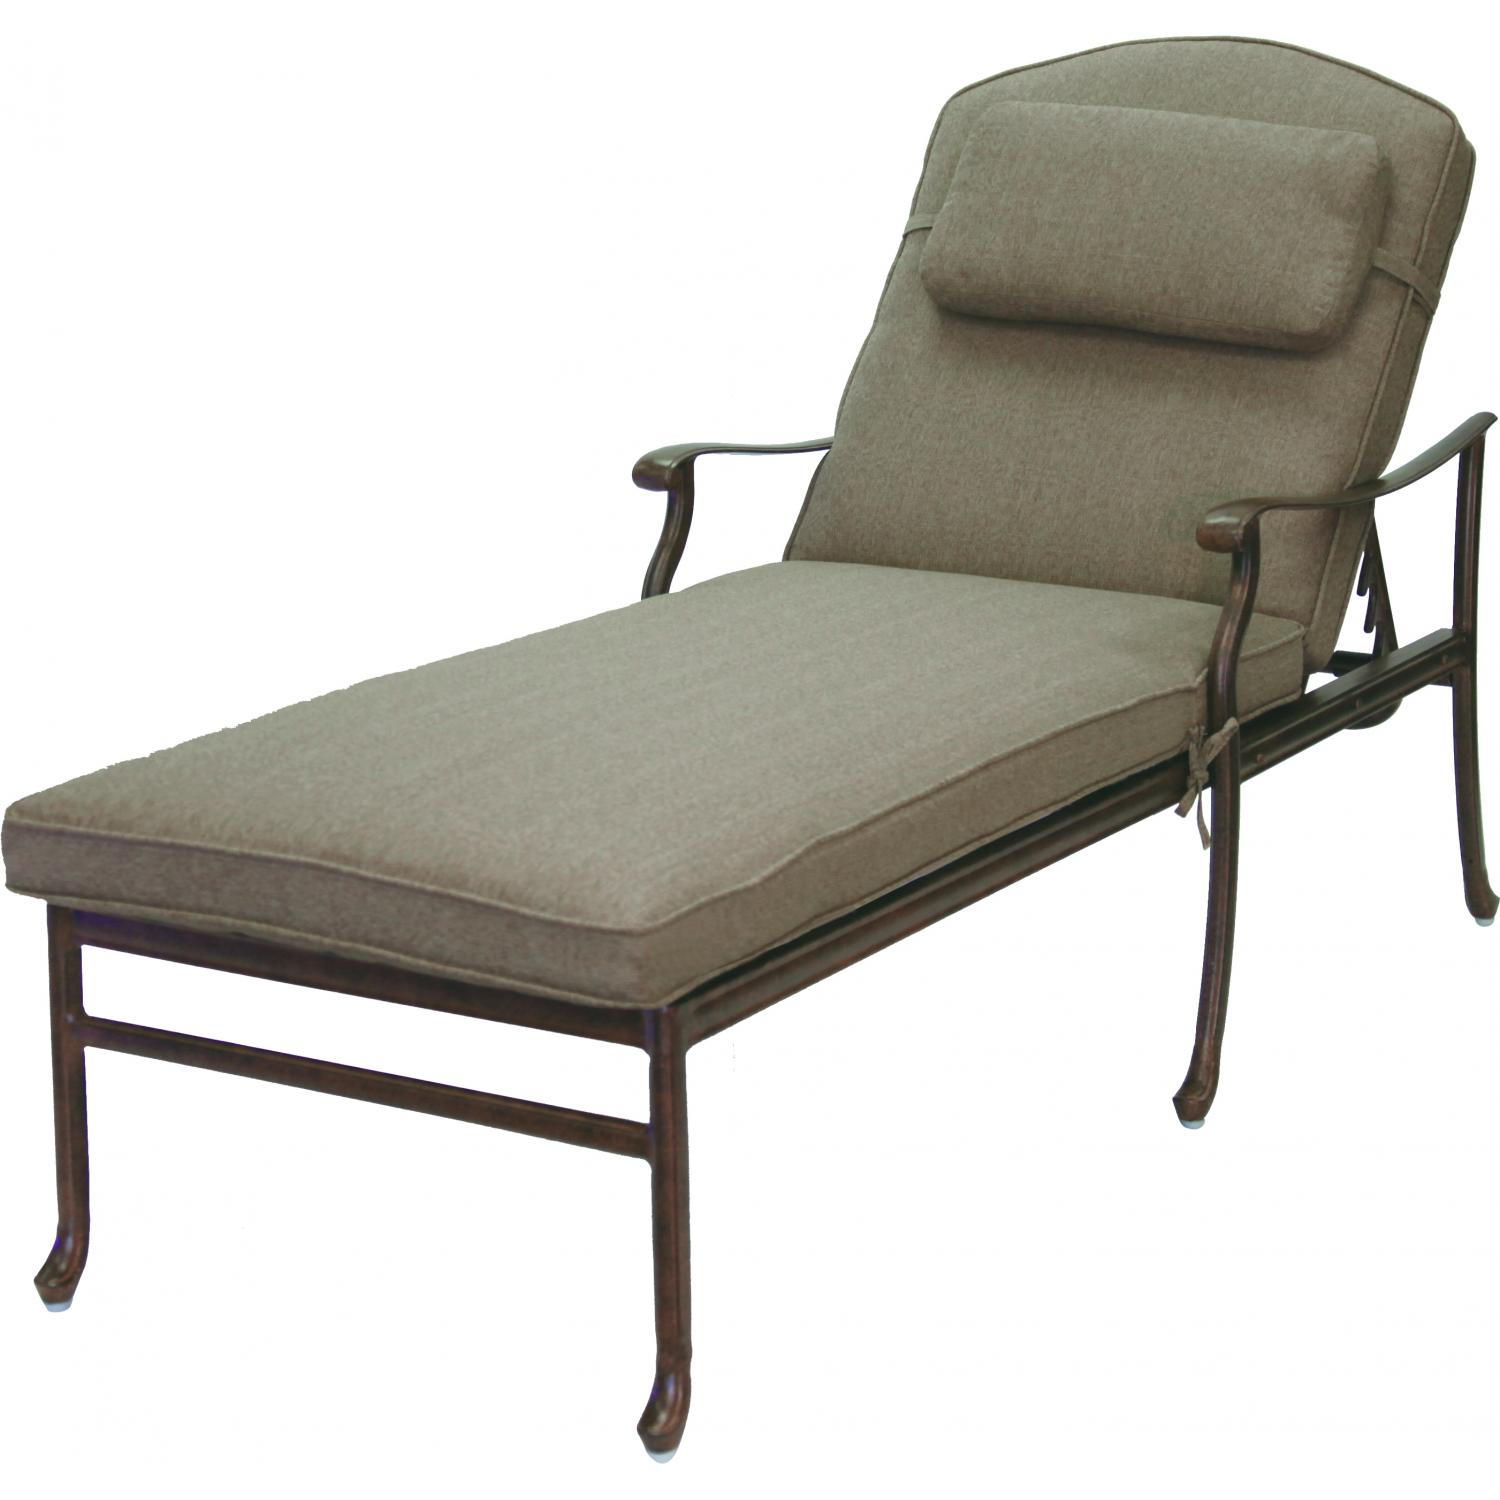 Darlee sedona cast aluminum patio chaise lounge antique for Aluminum chaise lounges